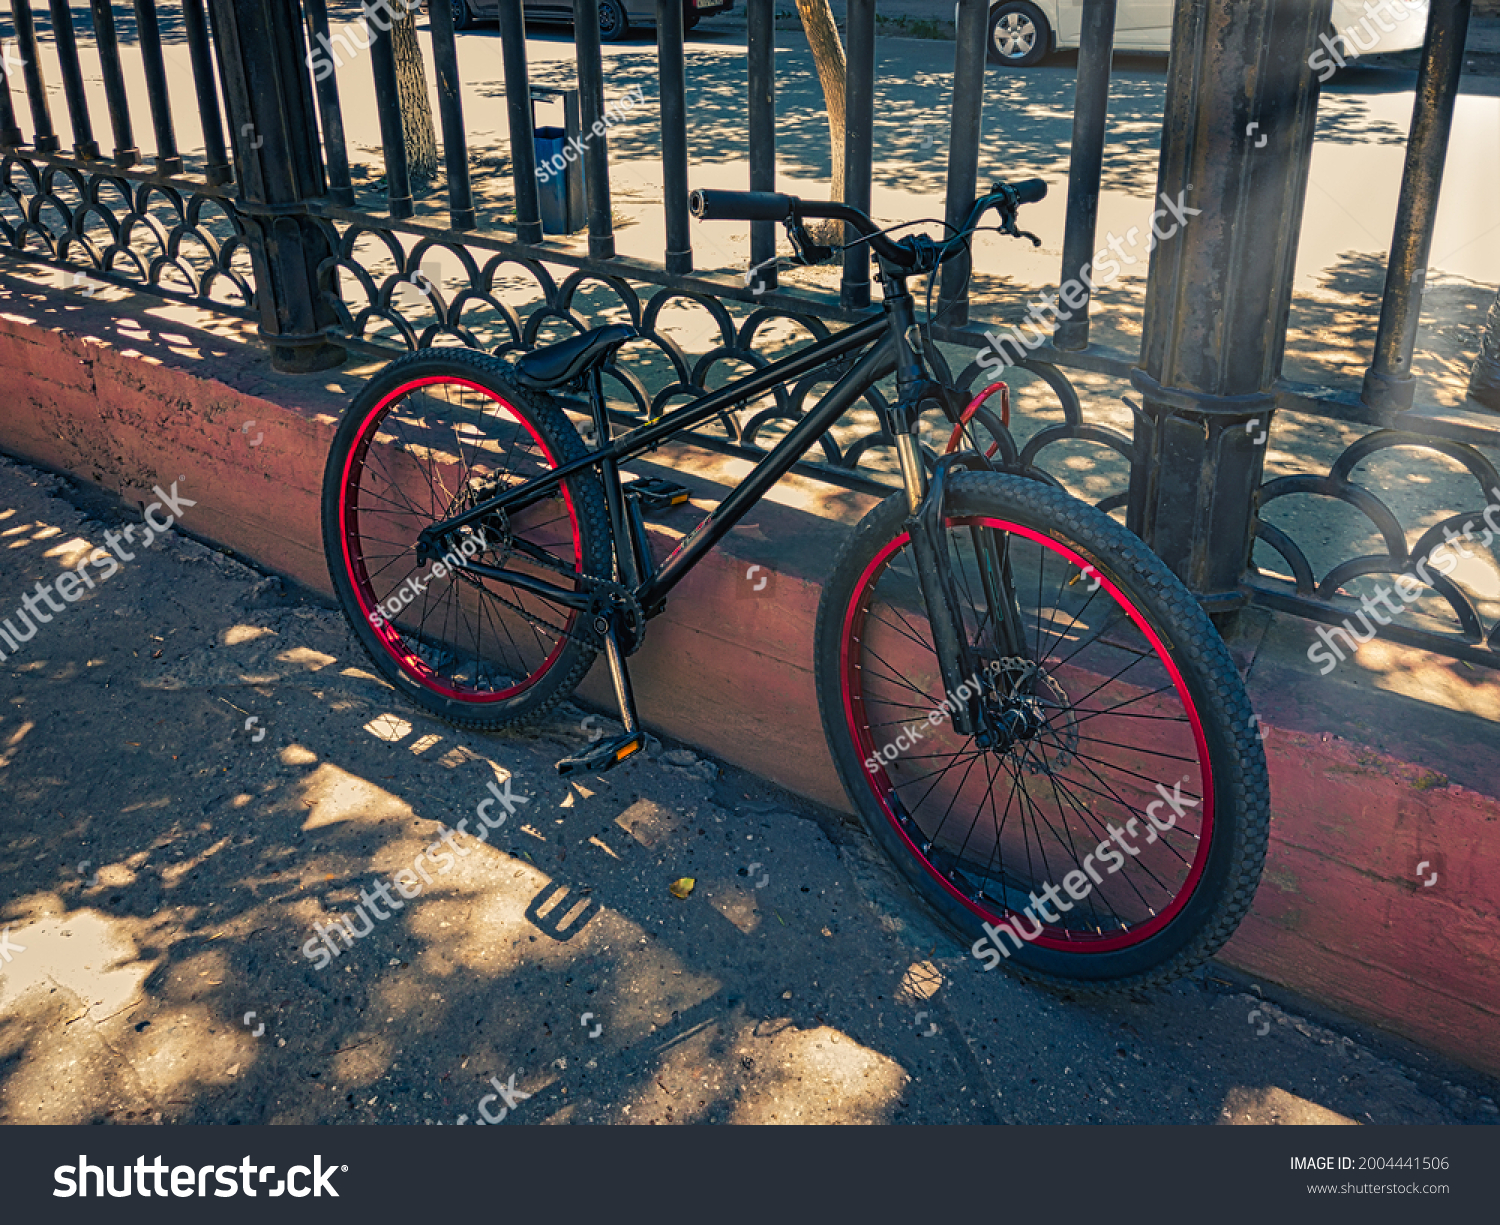 Urban transport. Black mountin bicycle parked against metal fence. Modern bicycle with lock parking in the city.